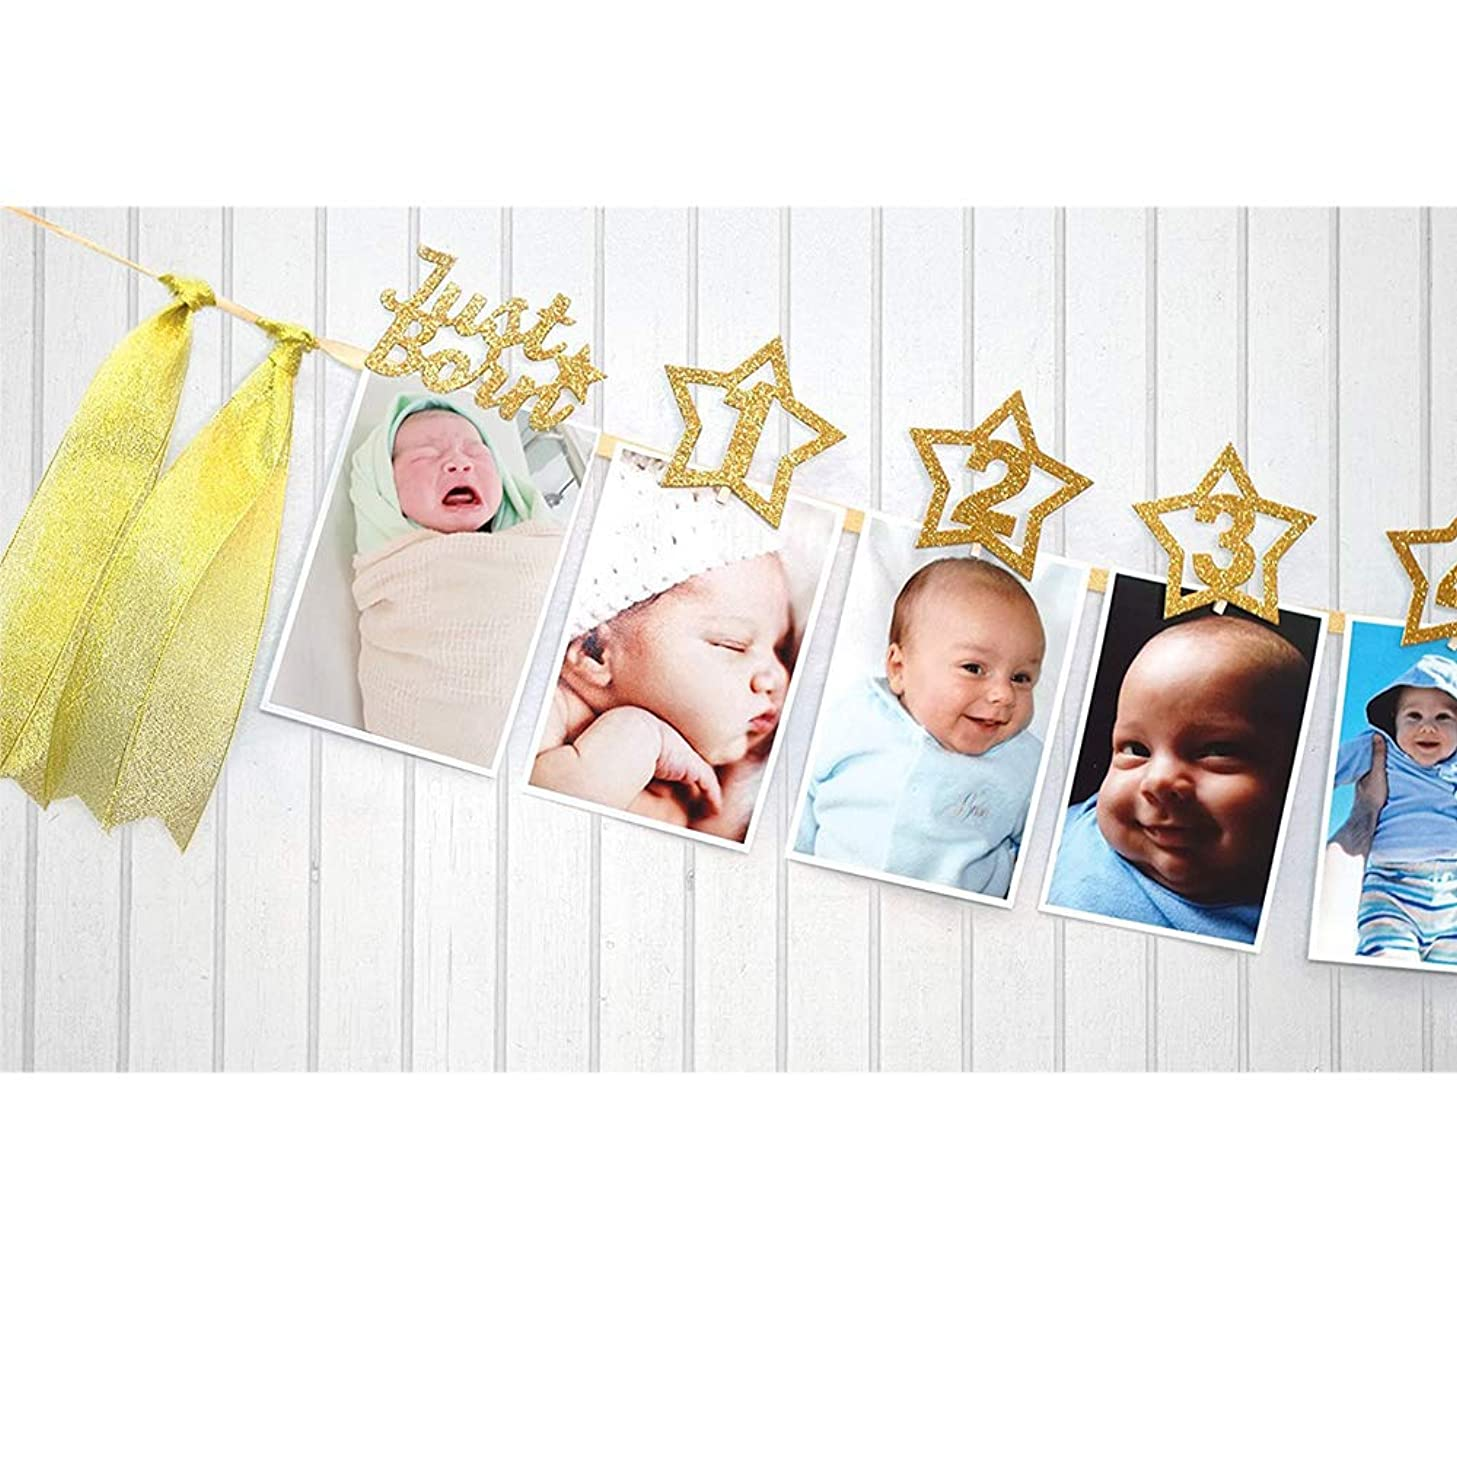 MAGQOO Gold Glitter 1st Birthday Bunting Garland Baby Photo Banner Baby 1-12 Month Photo Prop Party Bunting Decor with Tassels